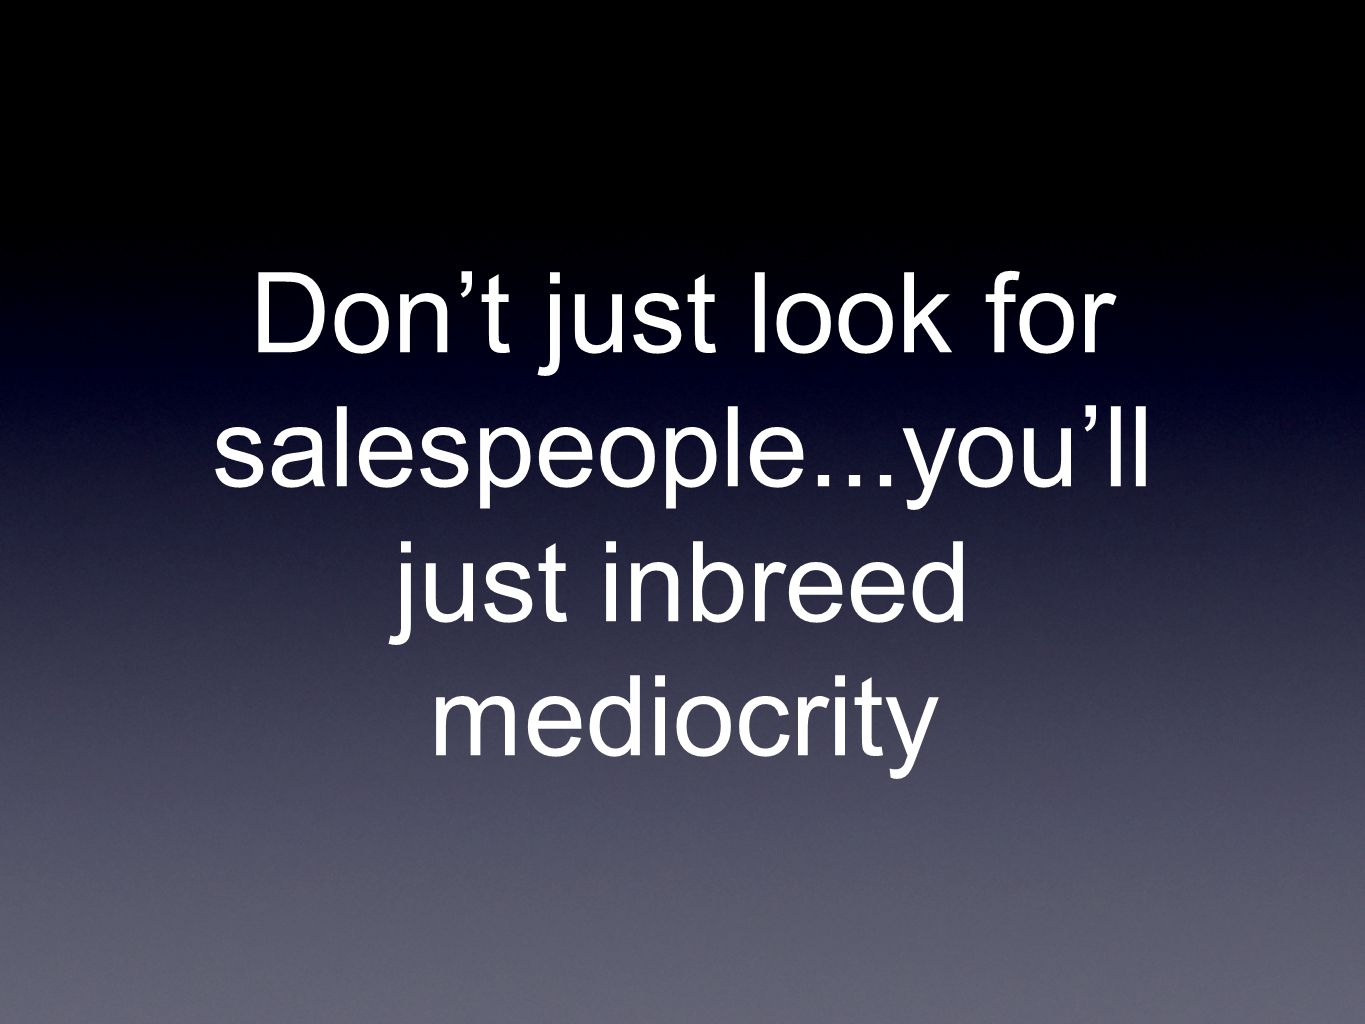 Don't just look for salespeople...you'll just inbreed mediocrity